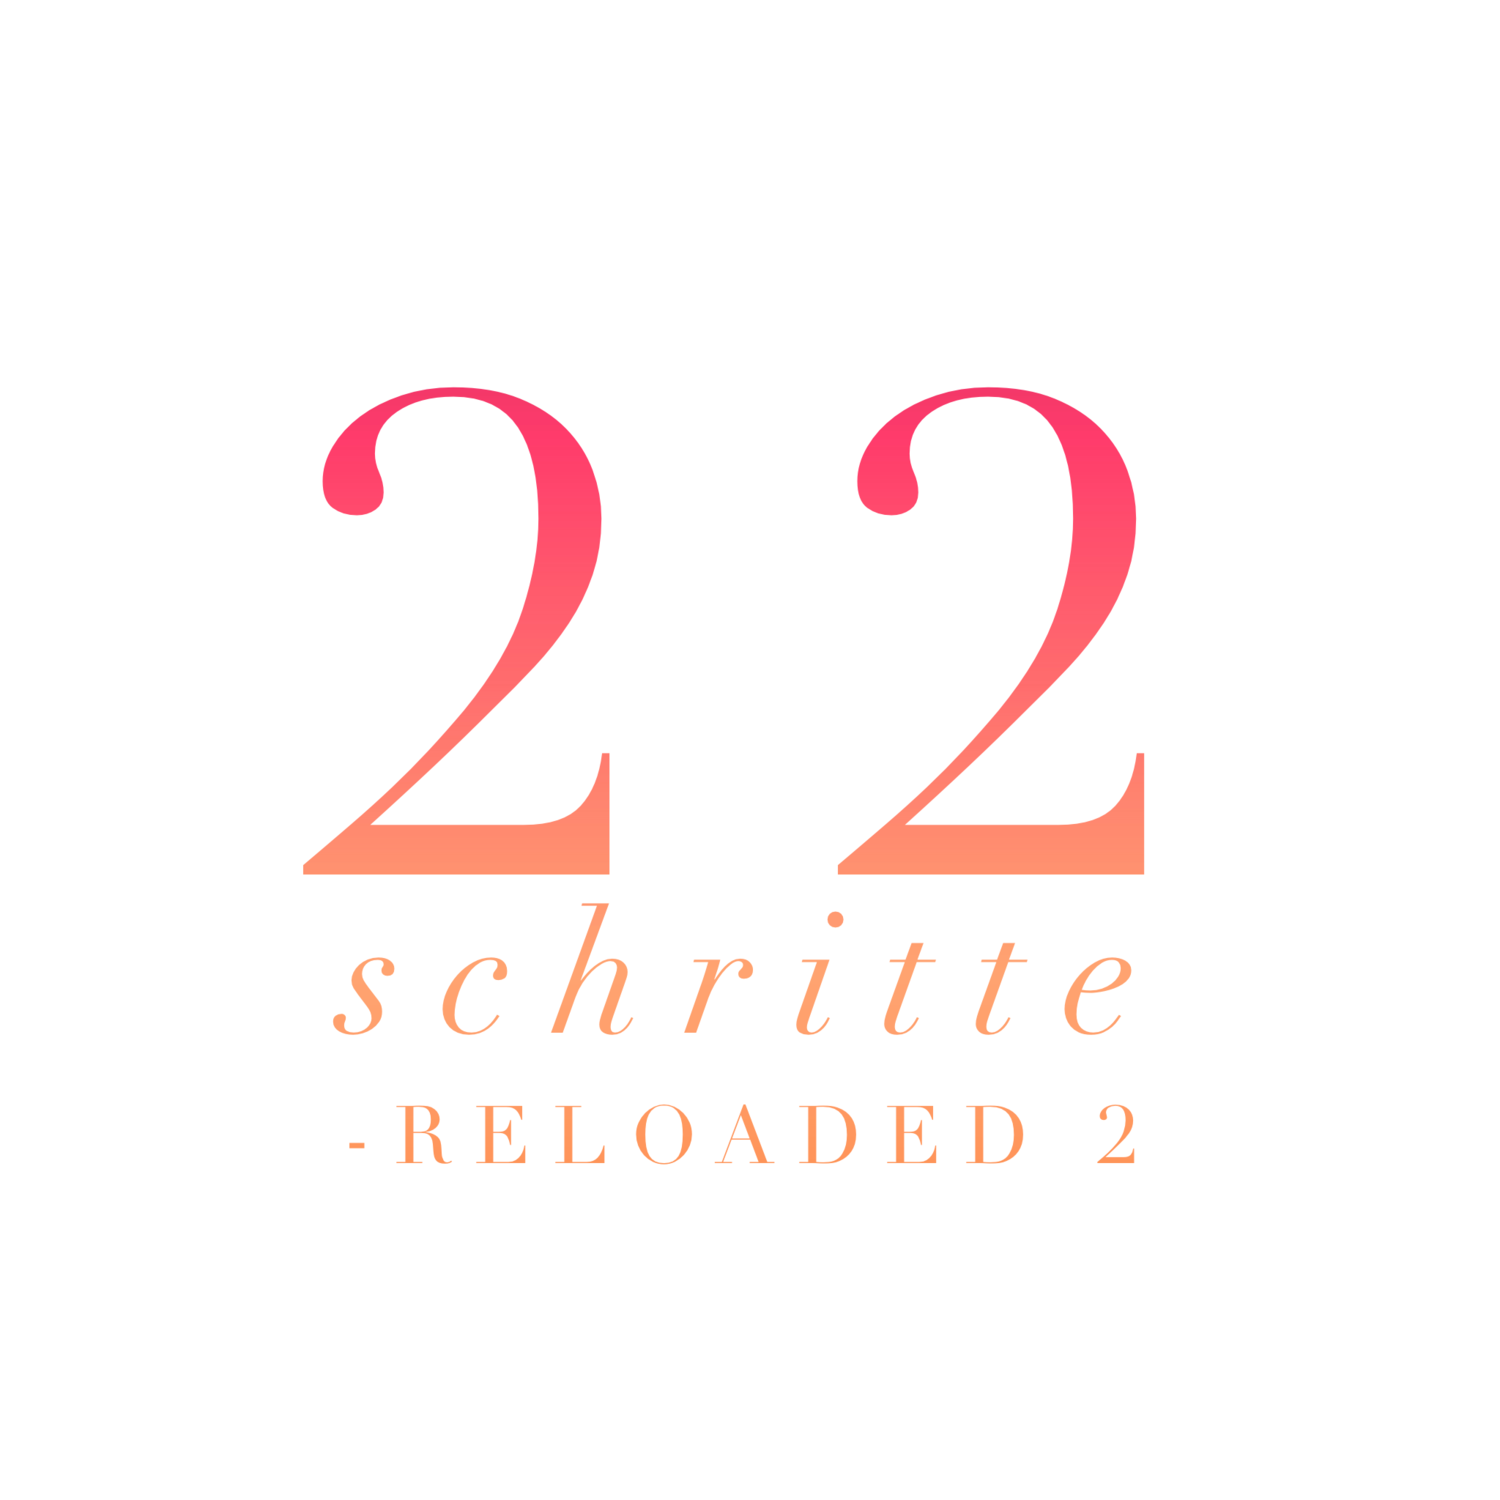 22 Steps reloaded Schritt 2